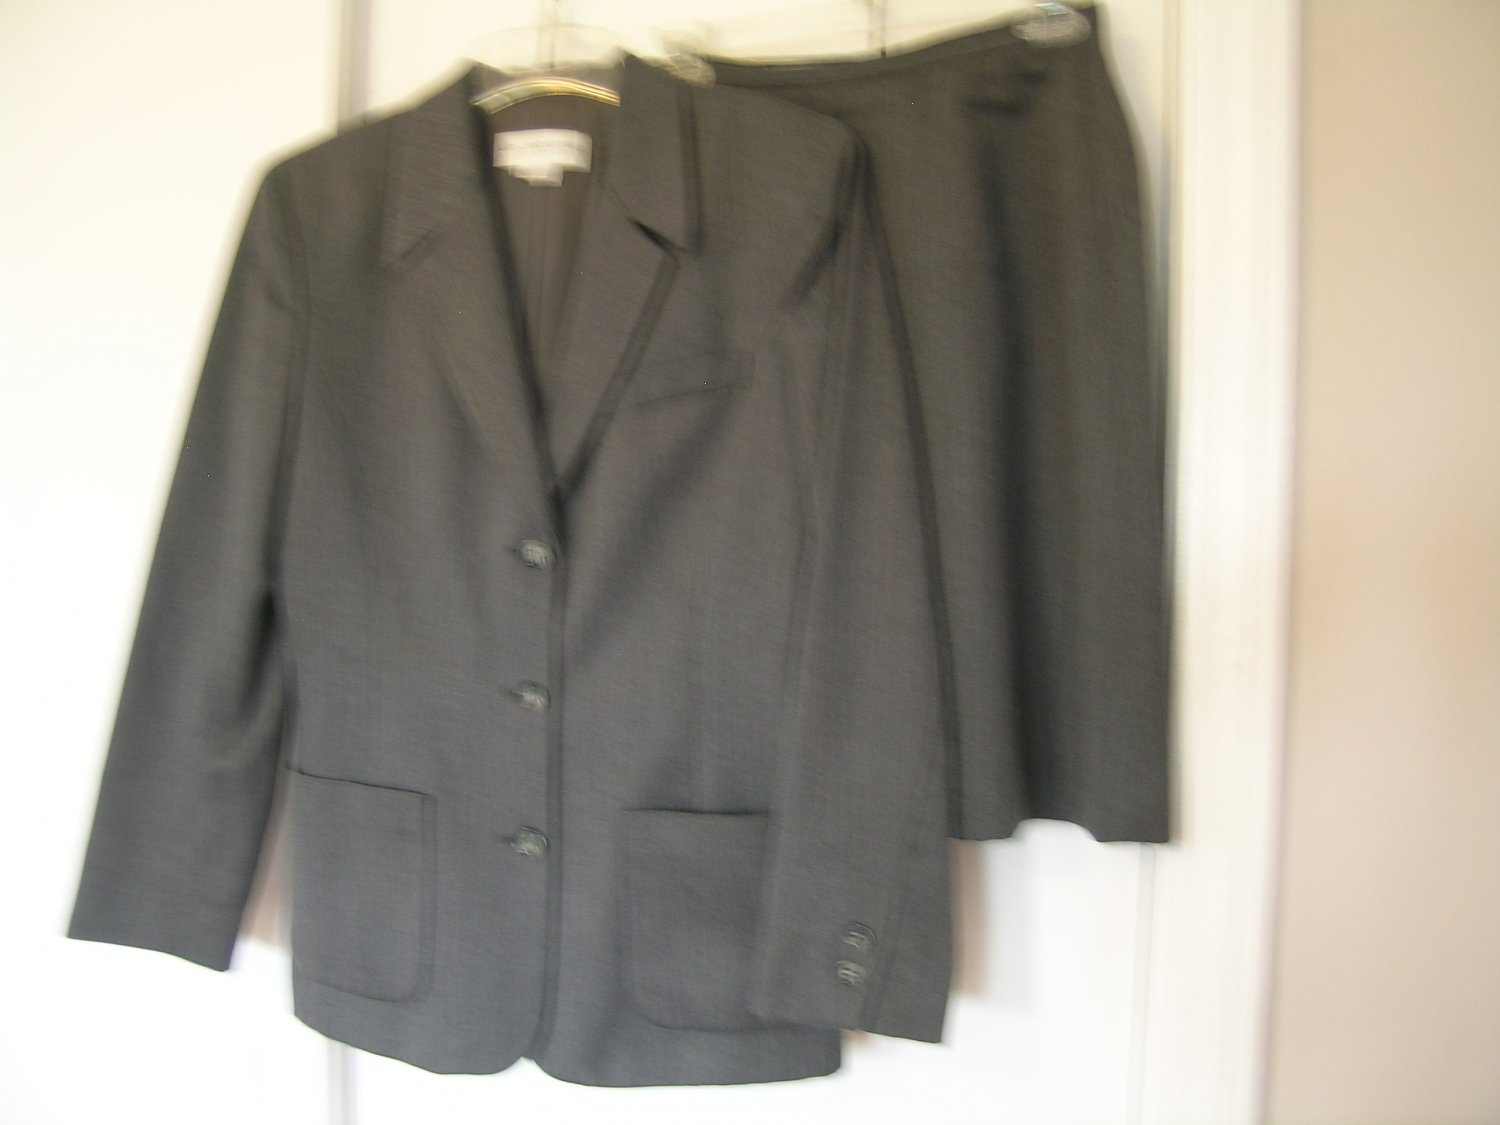 Liz Claiborne Collection Ladies Skirt Suit Size 6 6P